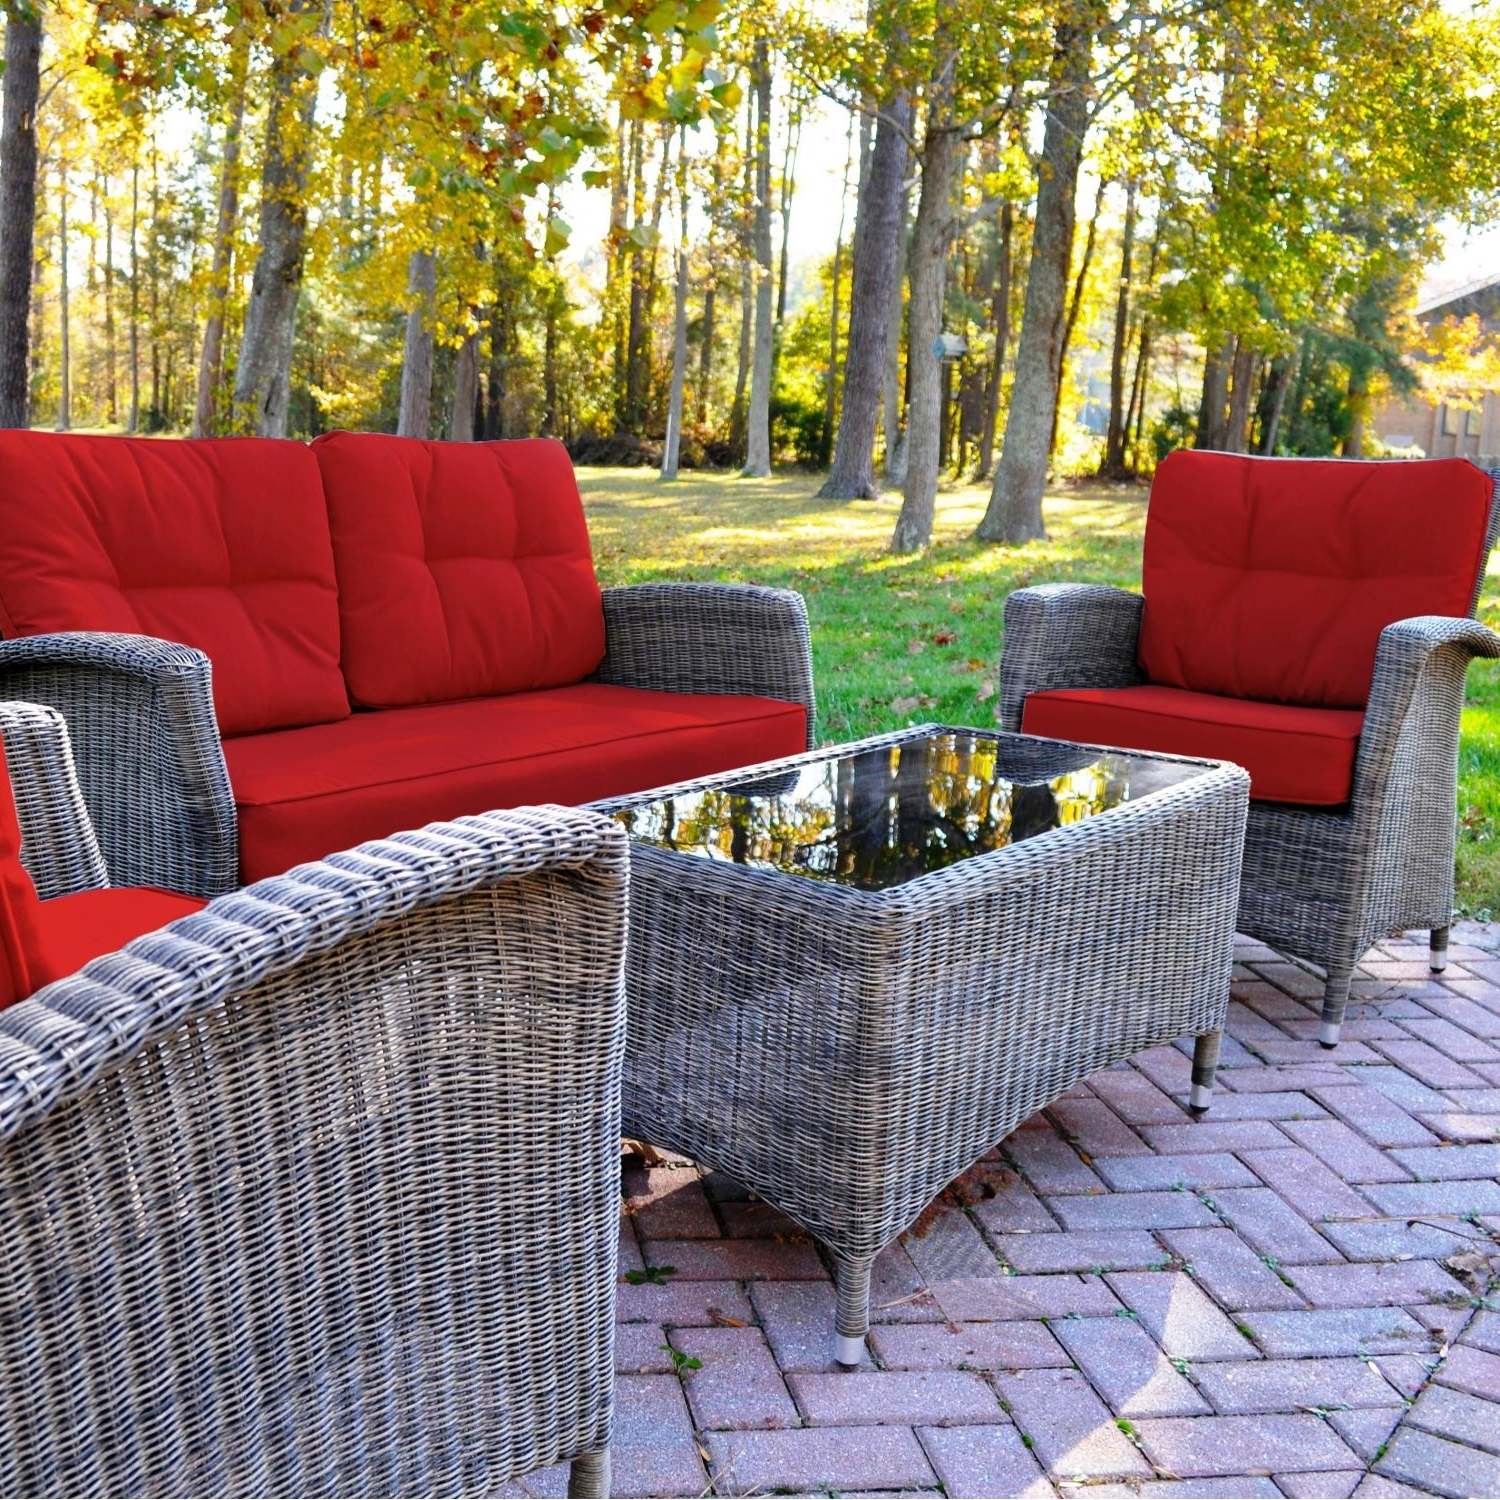 Well Known Patio Conversation Sets With Cushions For Kettler Lakena 4 Piece Wicker Patio Conversation Set With Jockey Red Cushions (View 15 of 20)